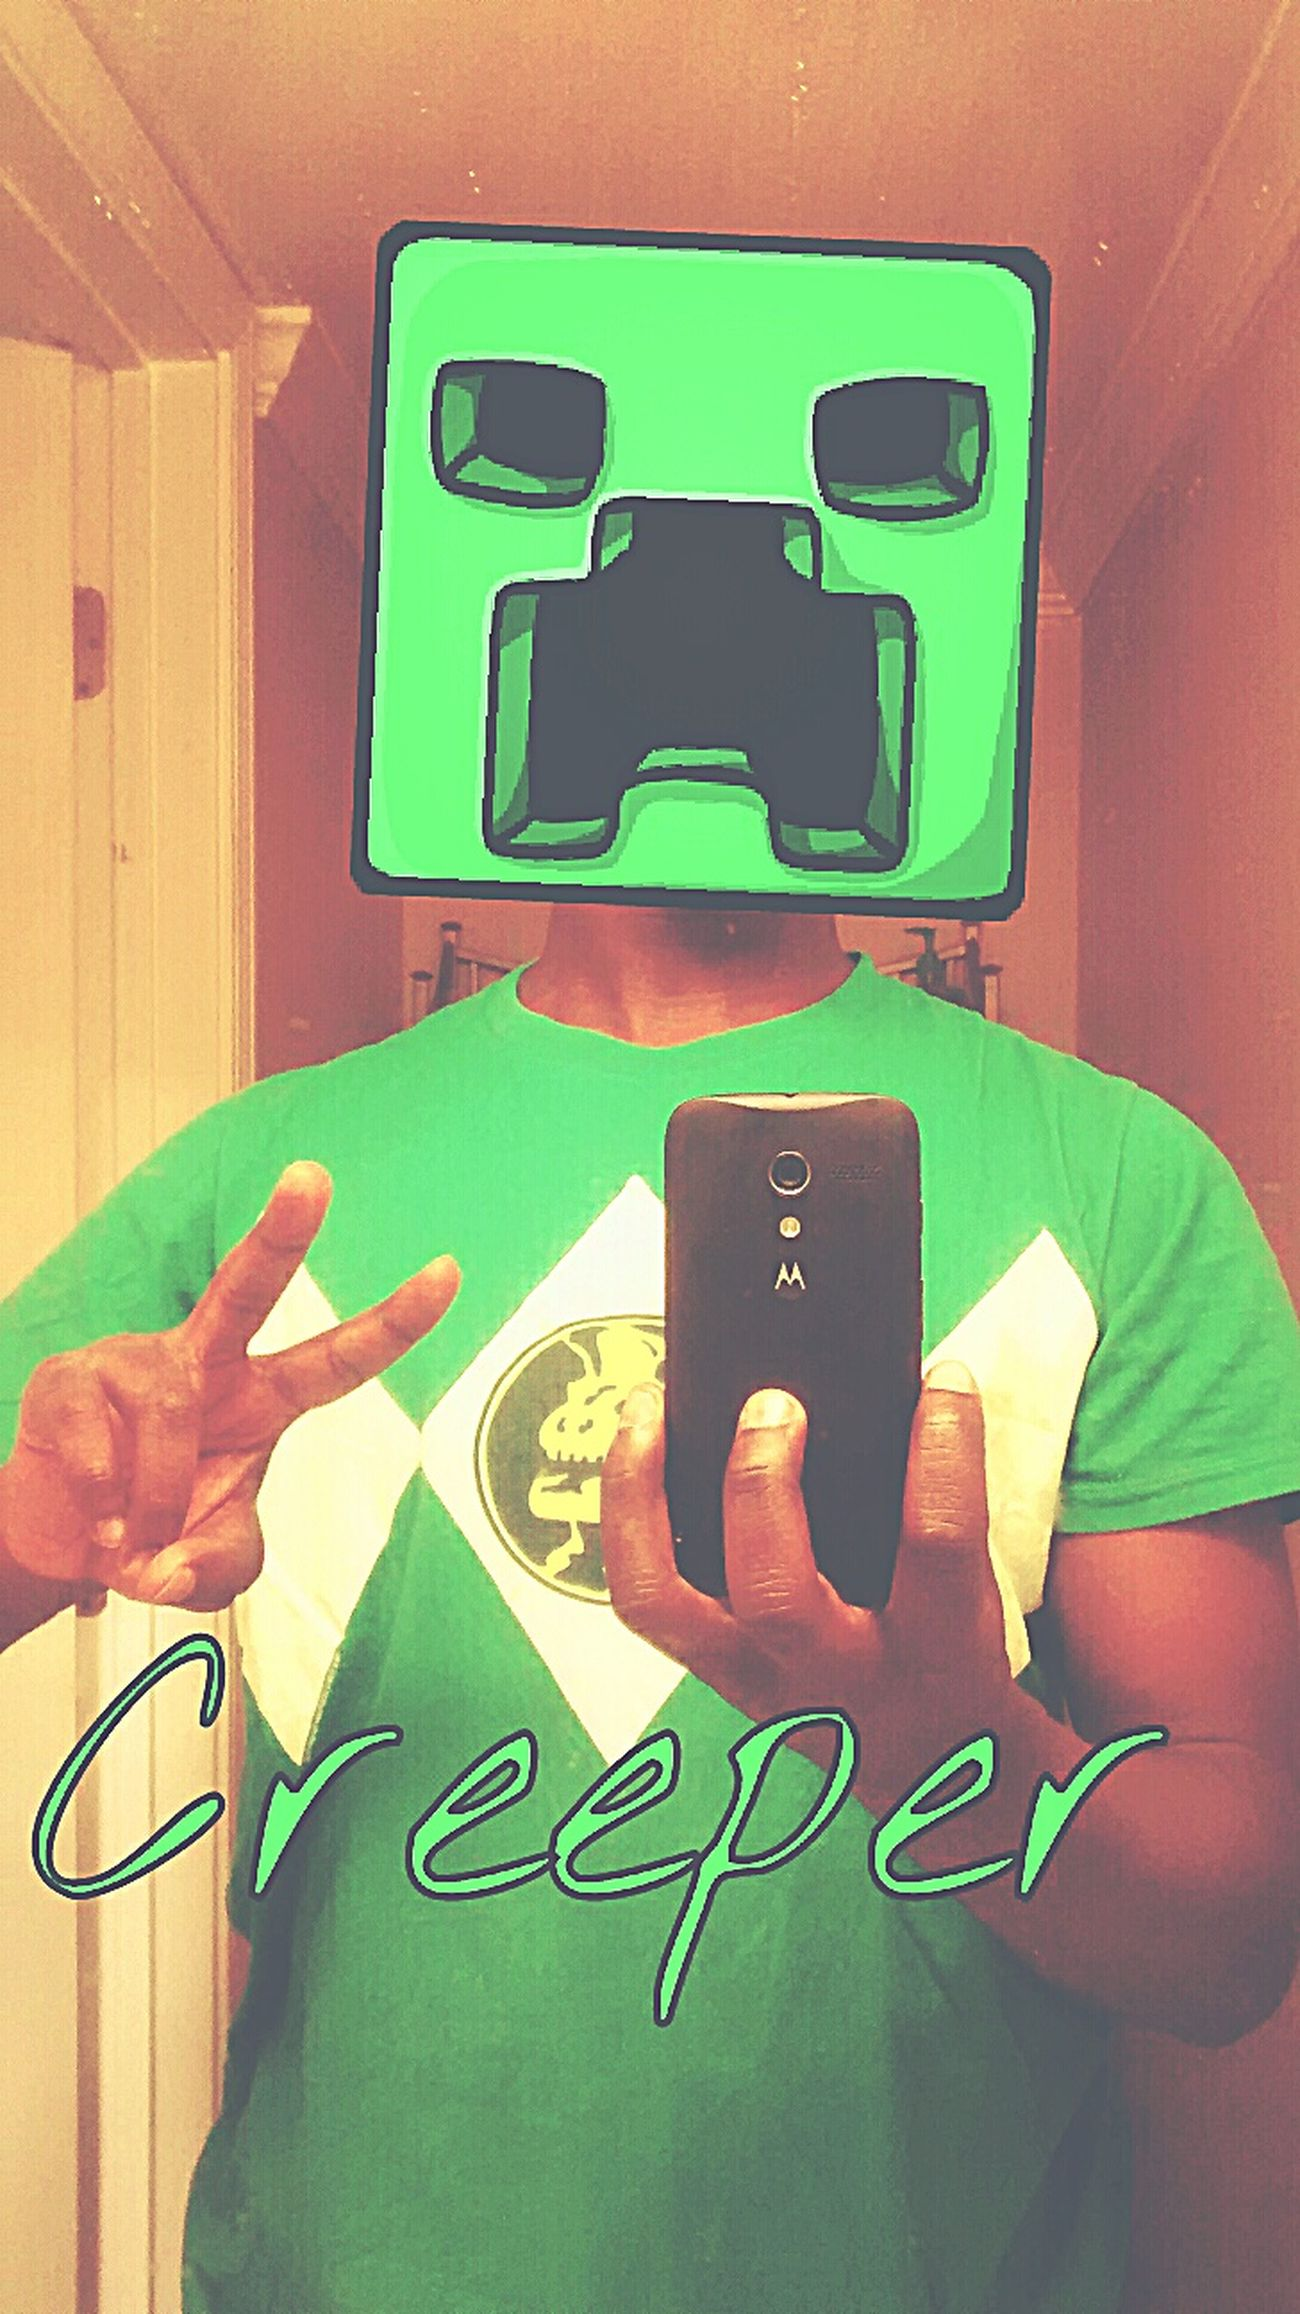 Creeper is my dance nickname Creeper Creeperminecraft Creeperthedancer Iamcreeper Minecraft Minecraft,creeper